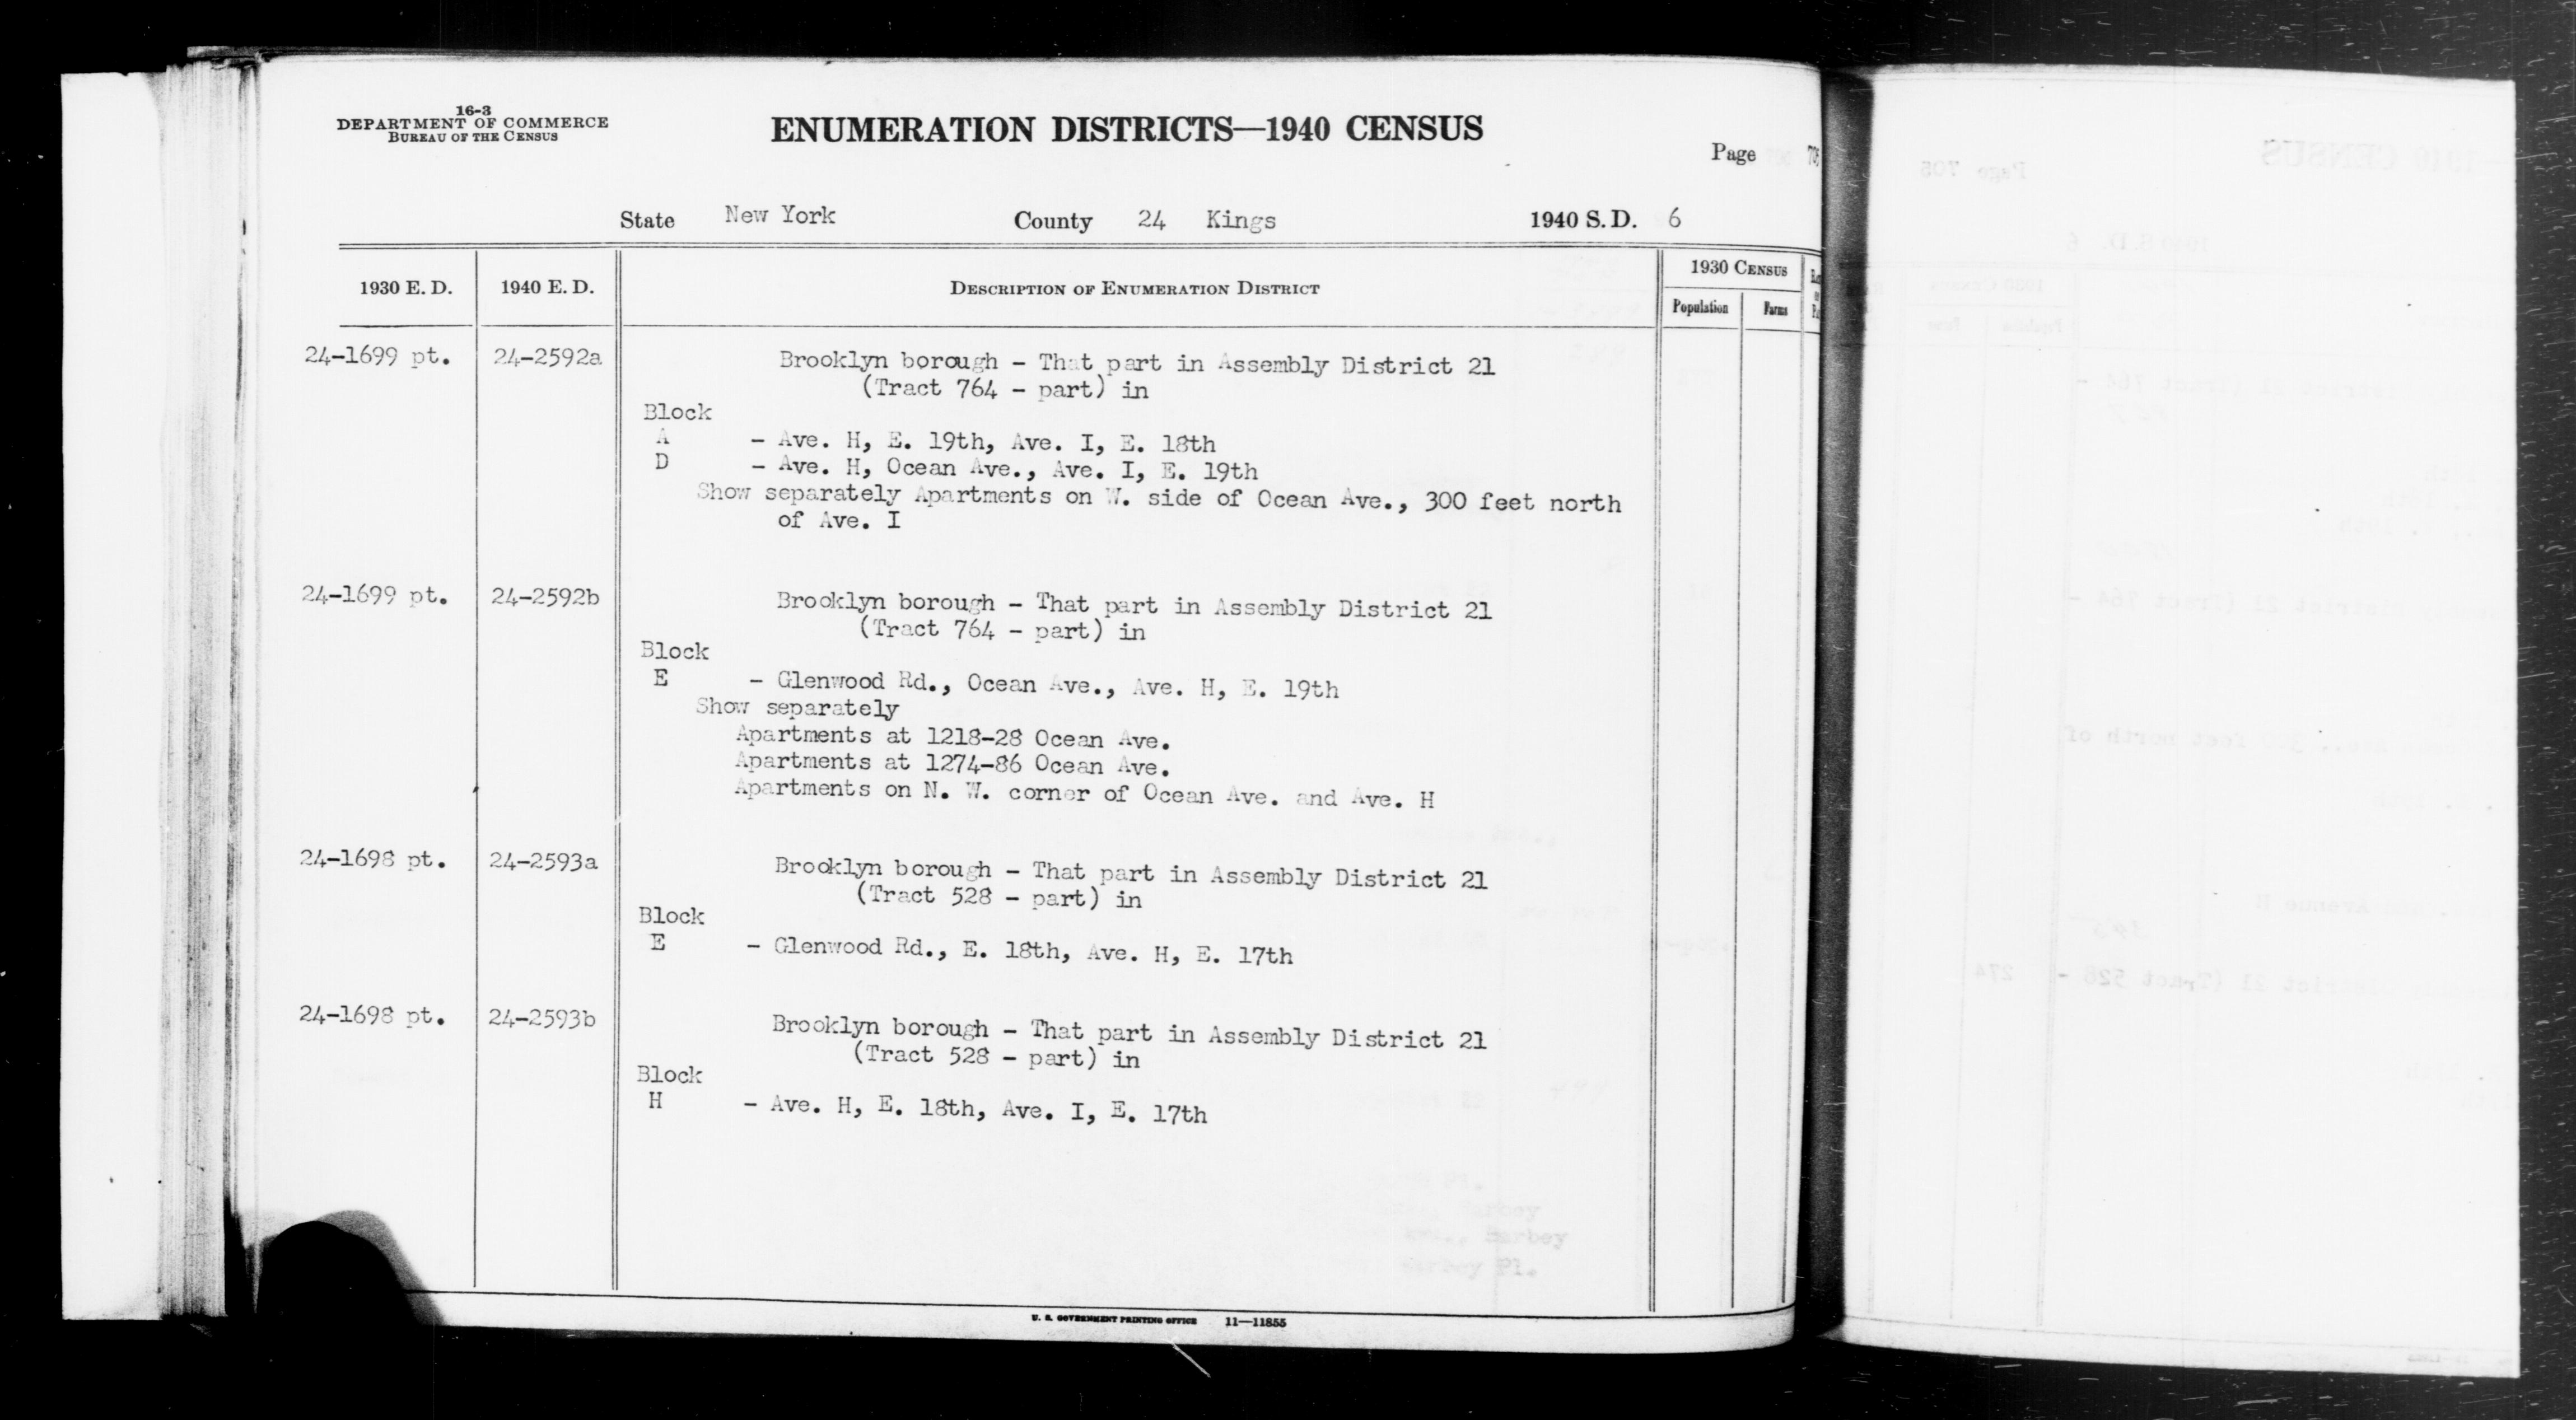 1940 Census Enumeration District Descriptions - New York - Kings County - ED 24-2592A, ED 24-2592B, ED 24-2593A, ED 24-2593B